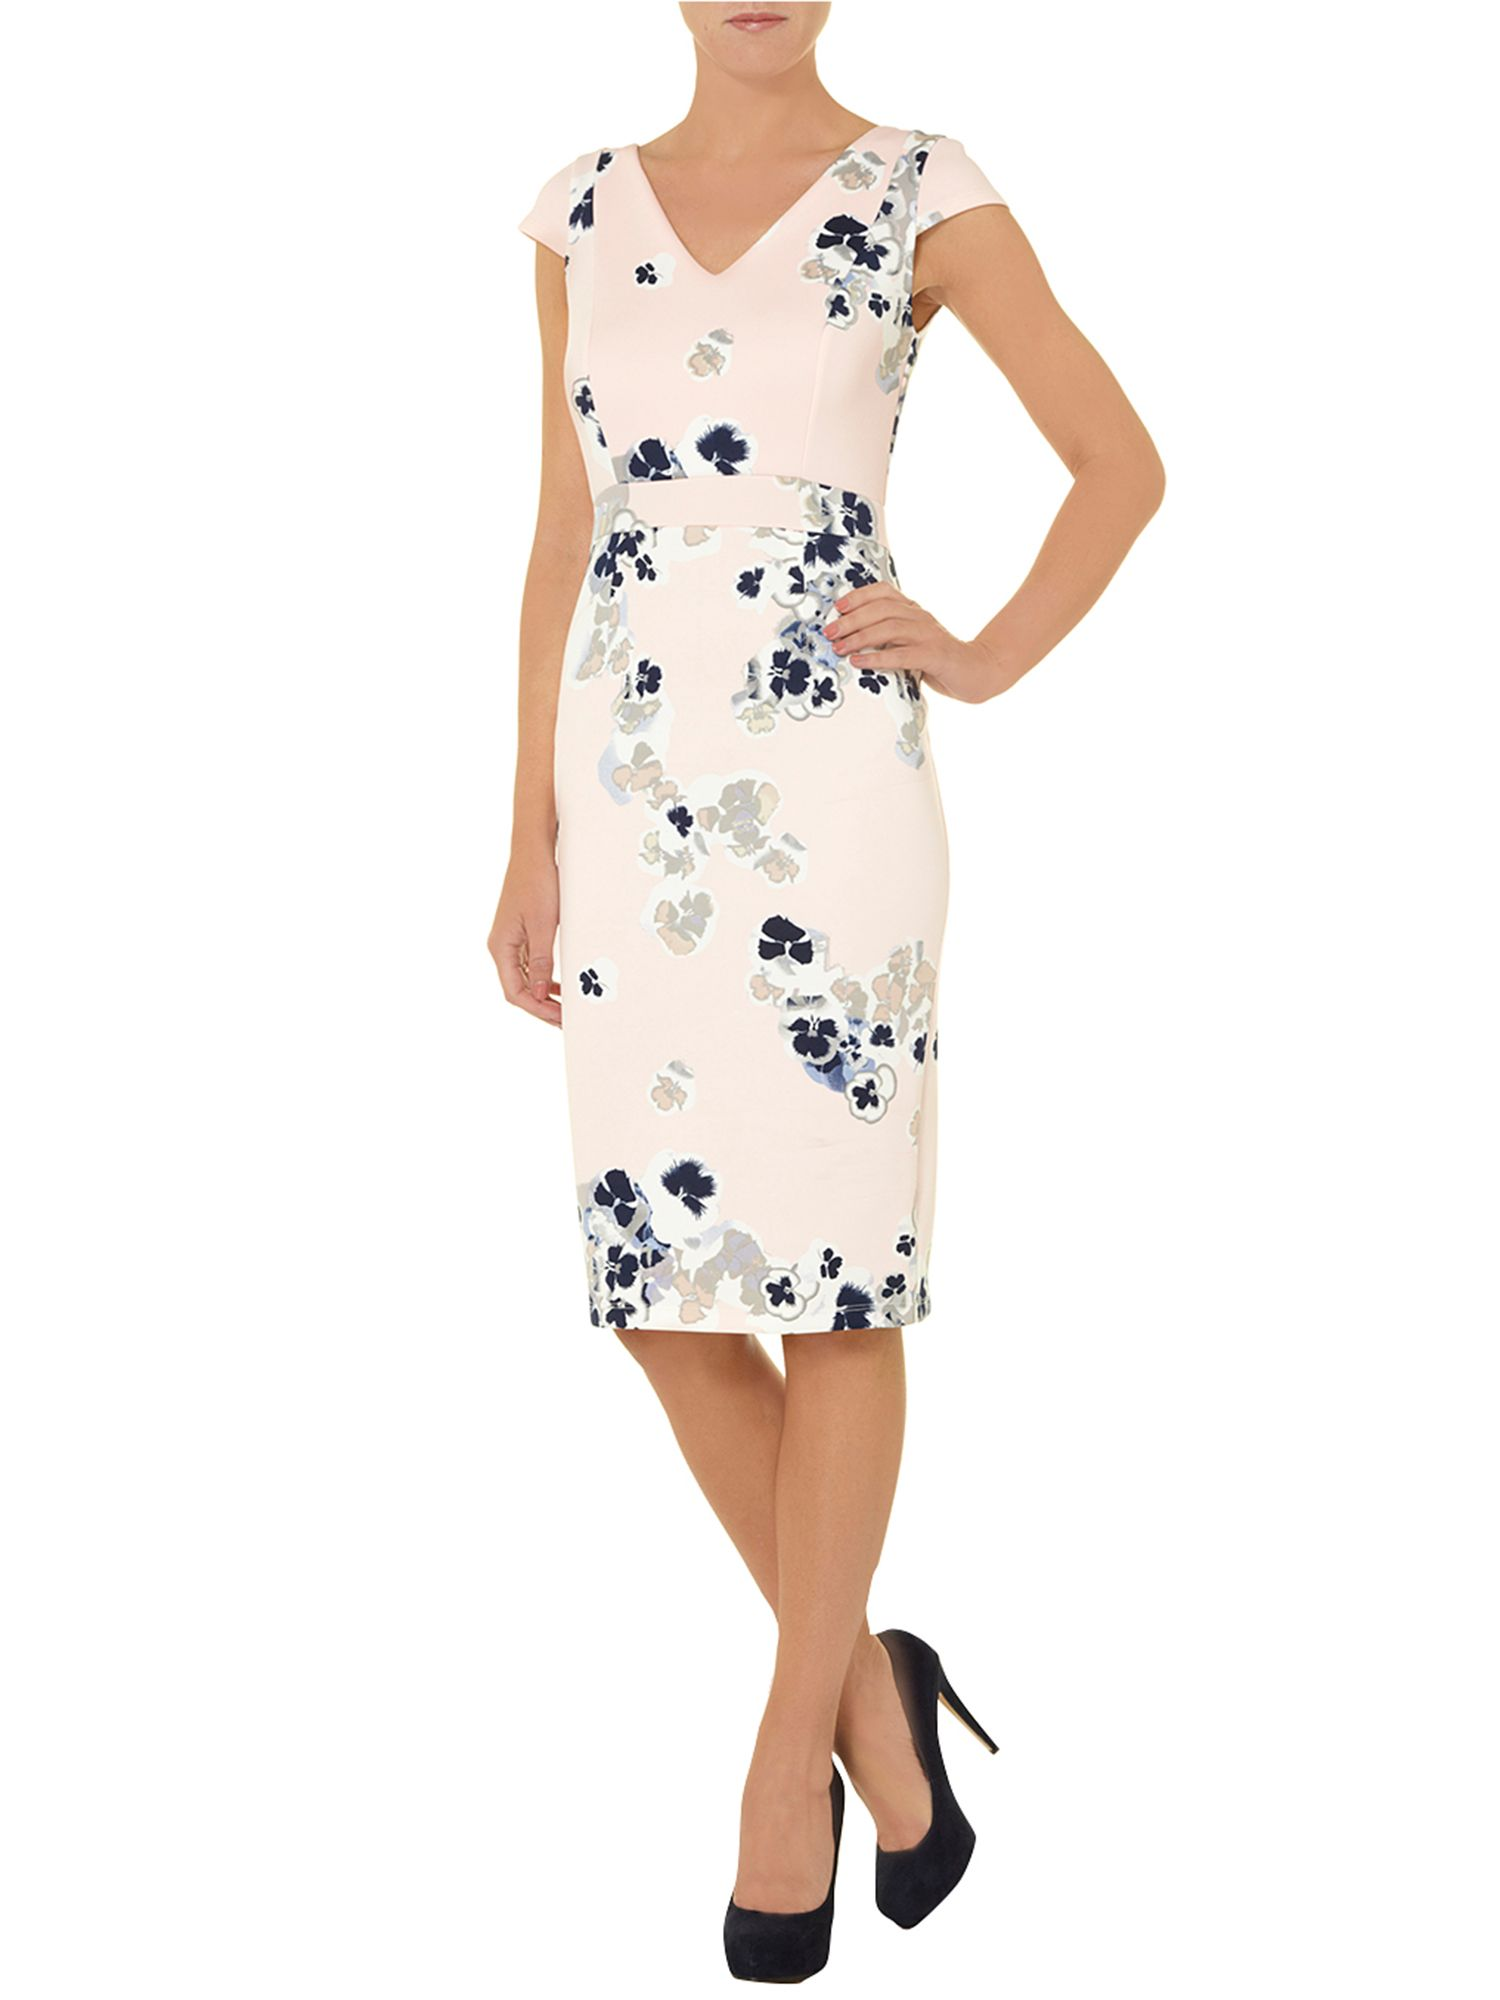 Pansy print pencil dress